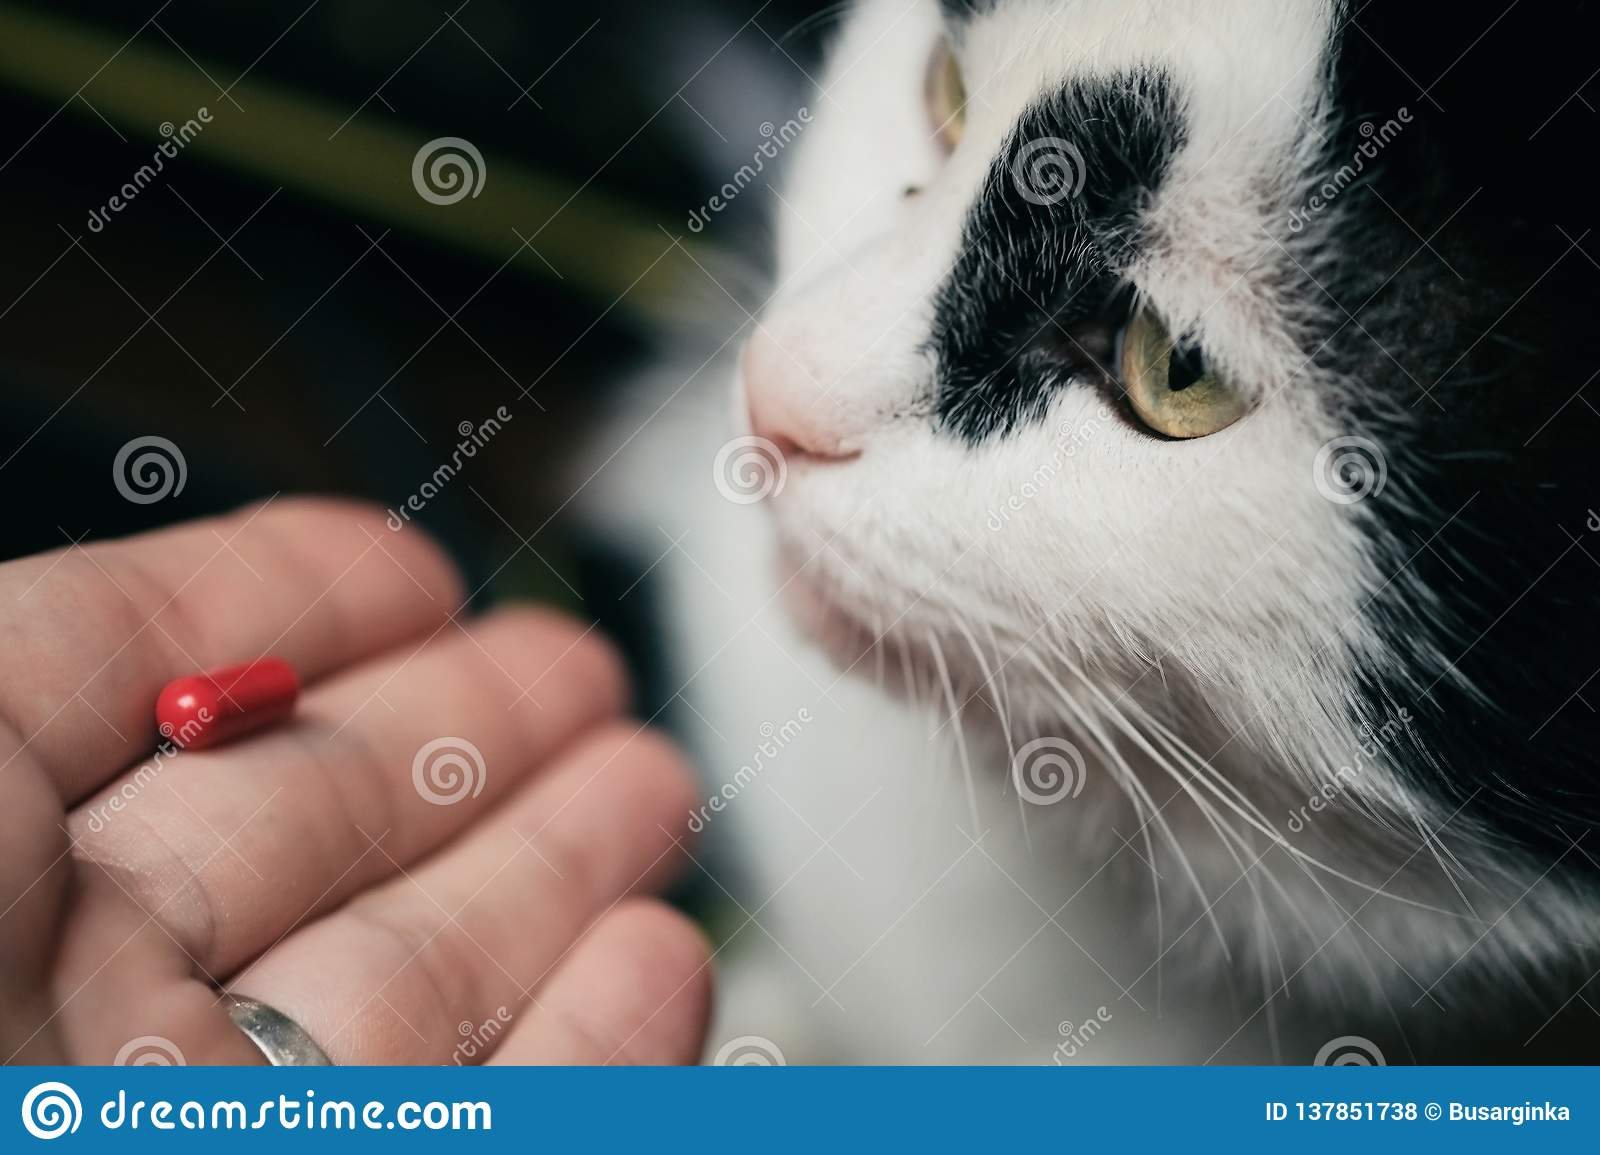 The cat receives a dose of medicine from the veterinarian. Red-haired cute clever cat is treated with pills after the